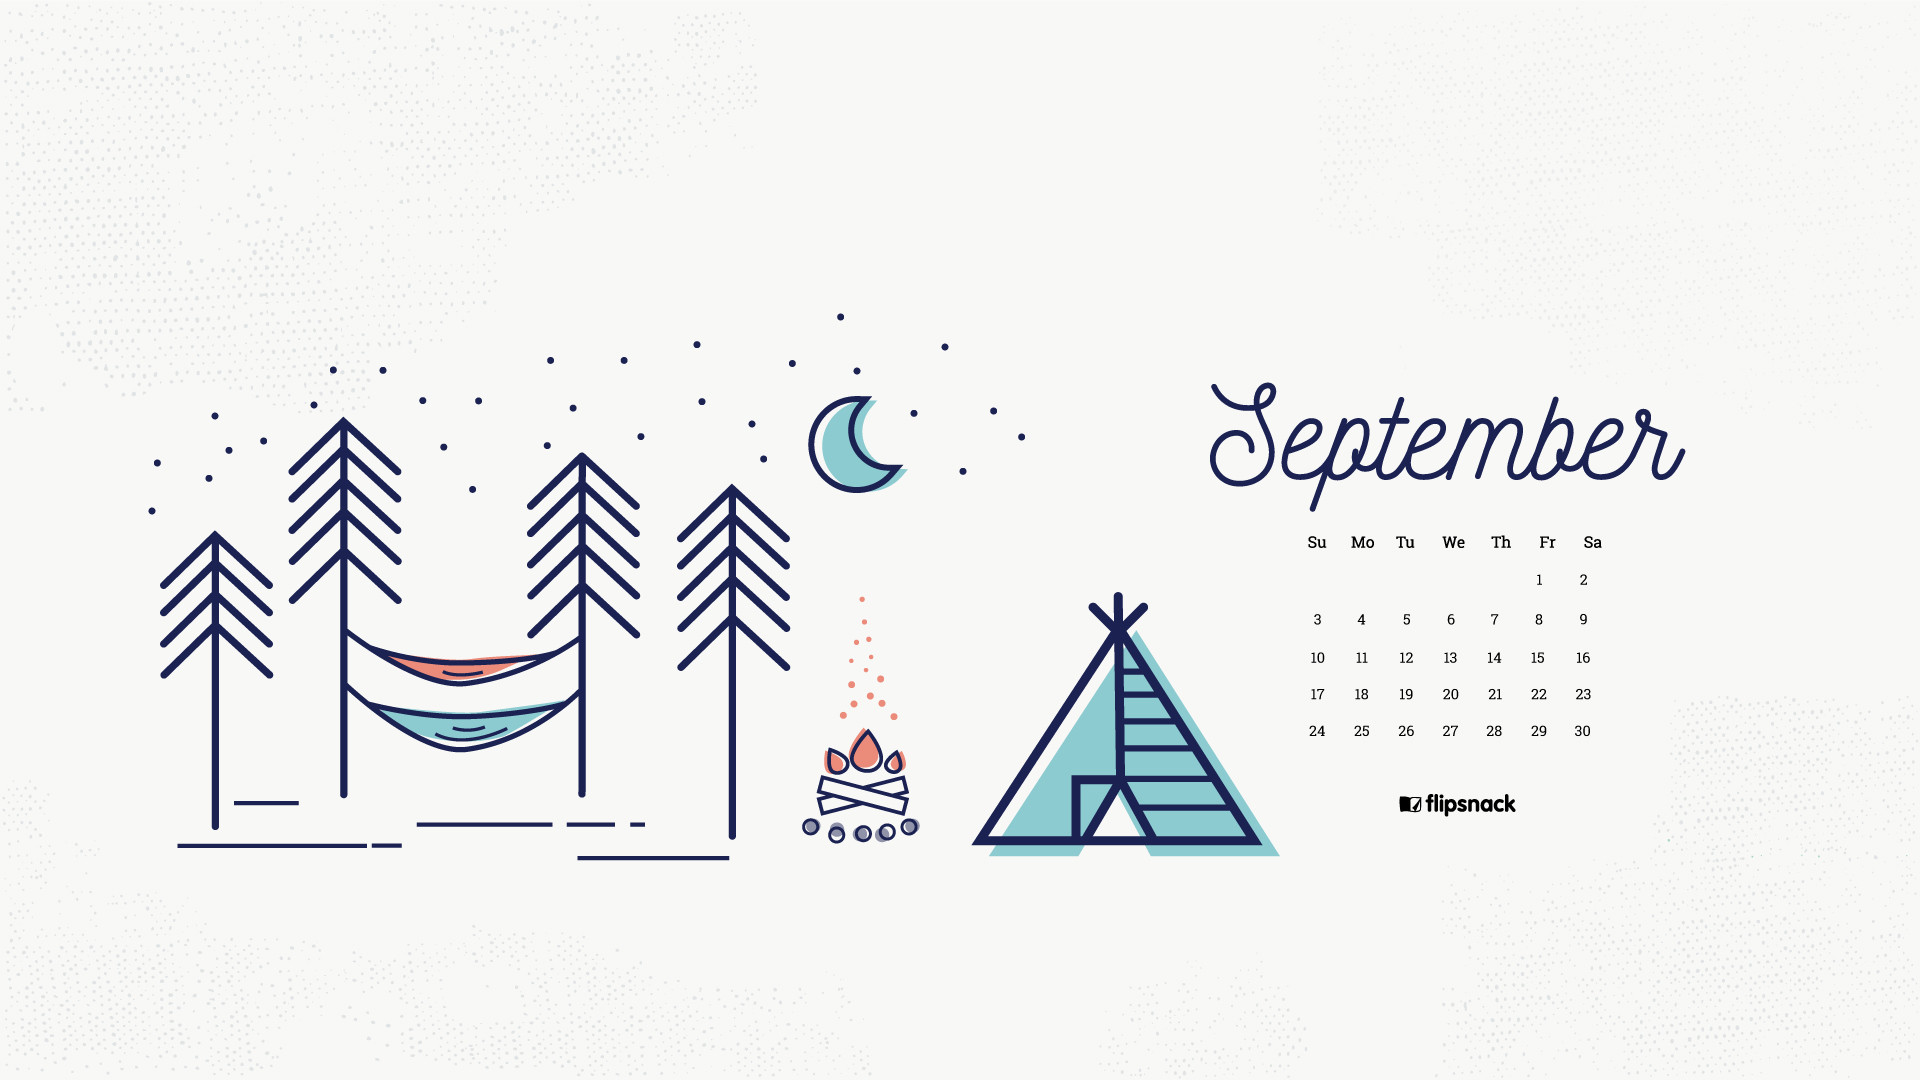 Weekly Calendar Wallpaper : July calendar wallpapers ·①